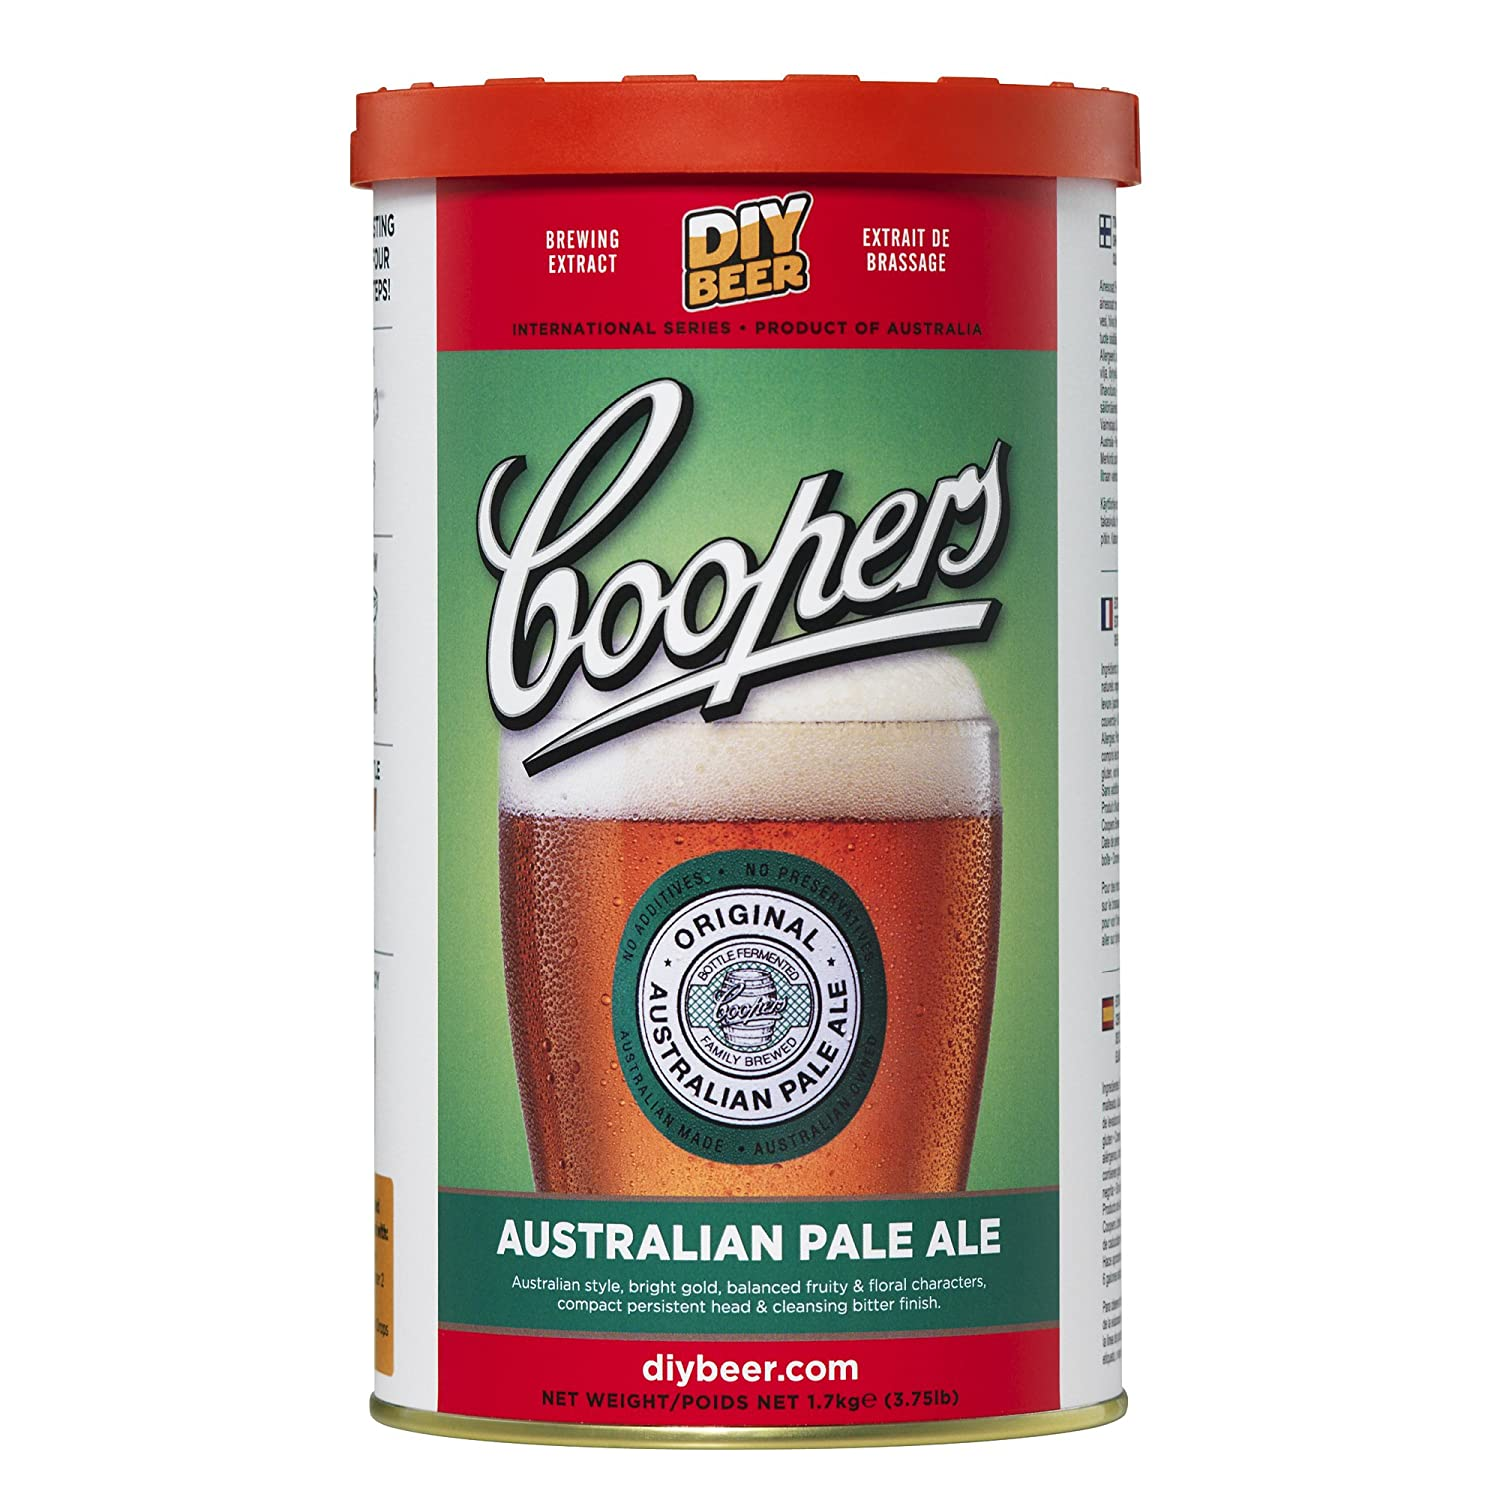 7ba7b0426b3 Amazon.com  Coopers DIY Beer Australian Pale Ale Homebrewing Craft Beer  Brewing Extract  Beer Brewing Malt Extracts  Kitchen   Dining